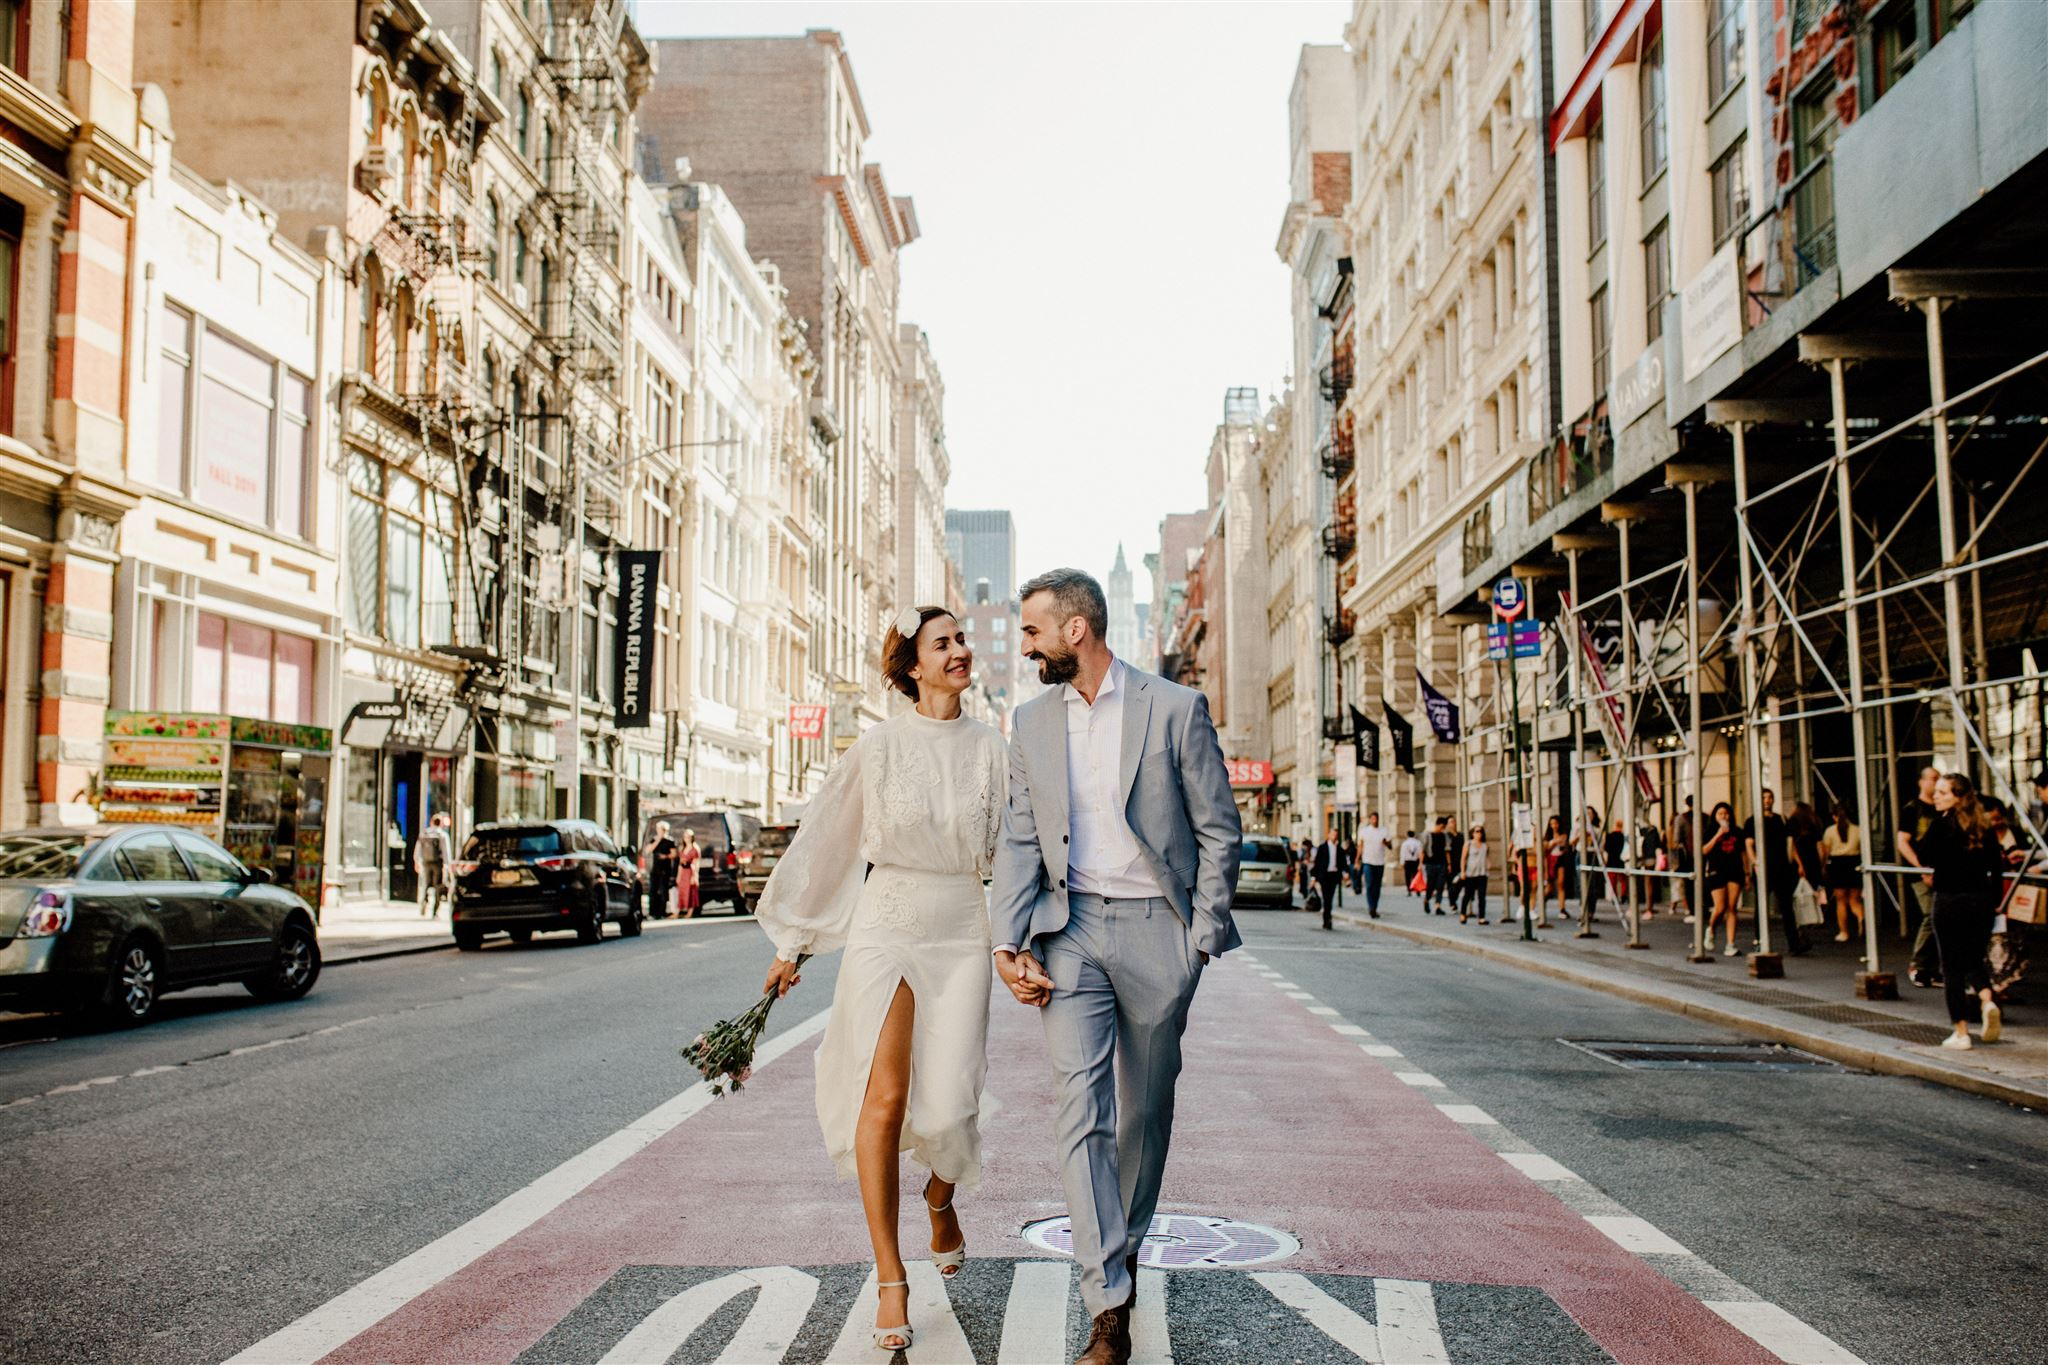 New York City Elopement - Jose Melgarejo